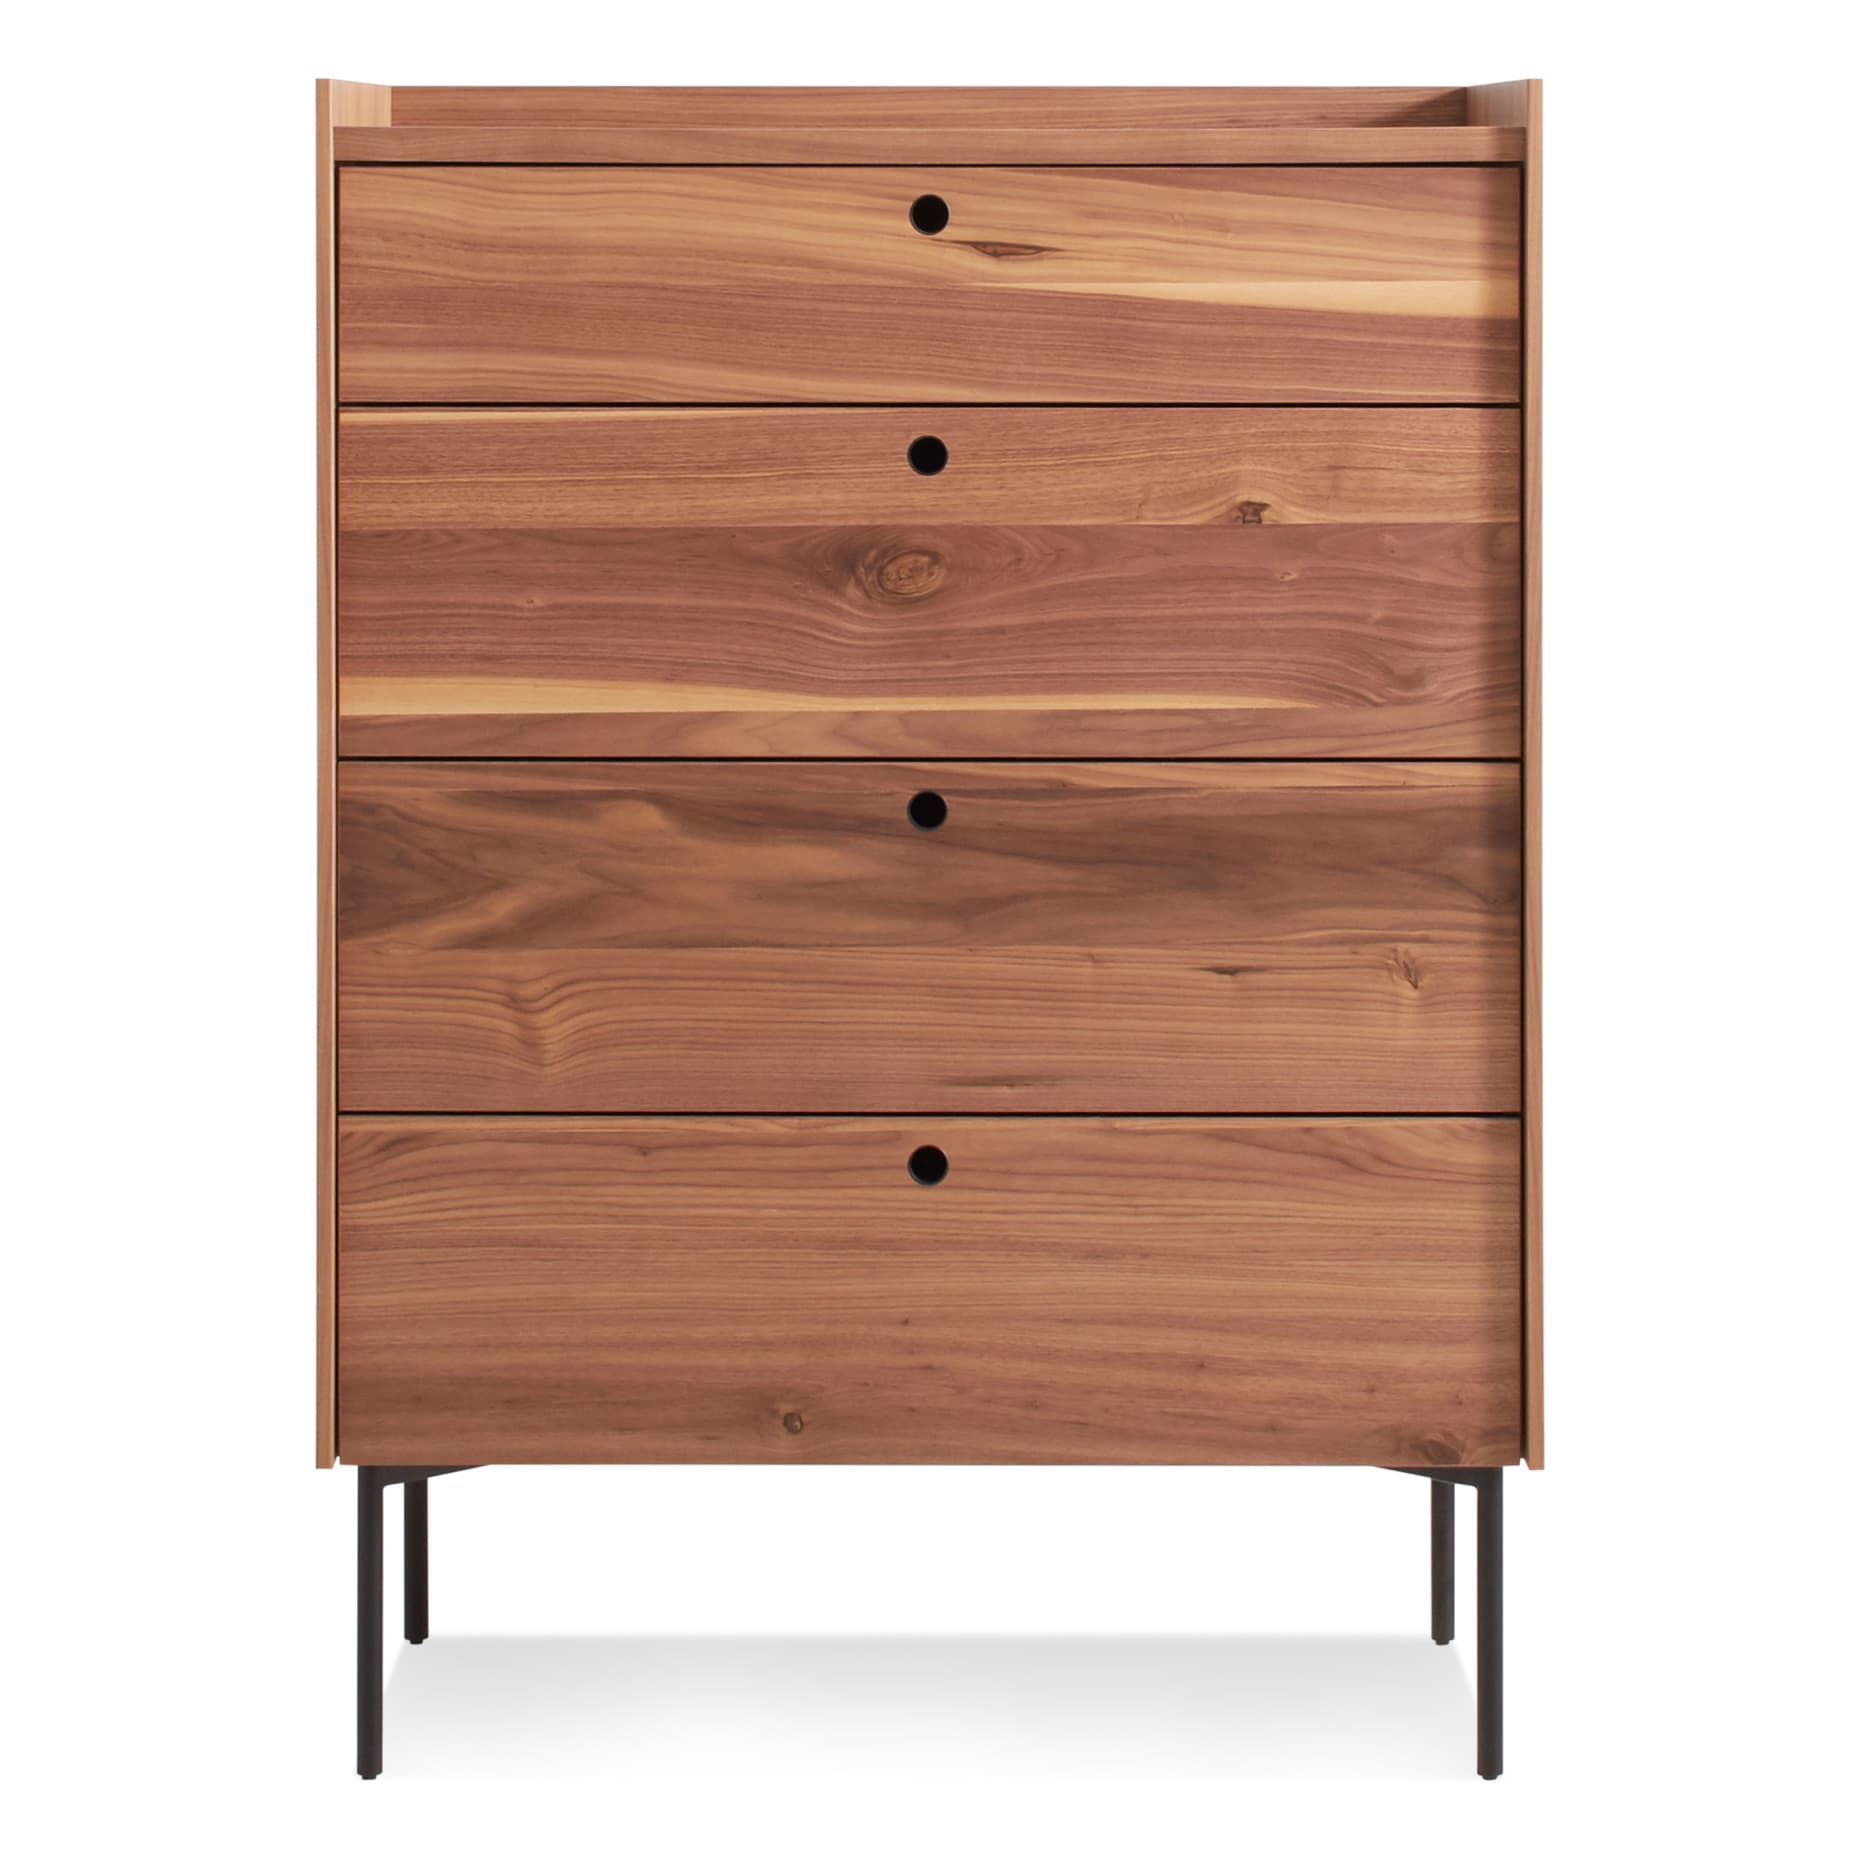 ek1 4dress wl peek 4 drawer dresser rustic walnut